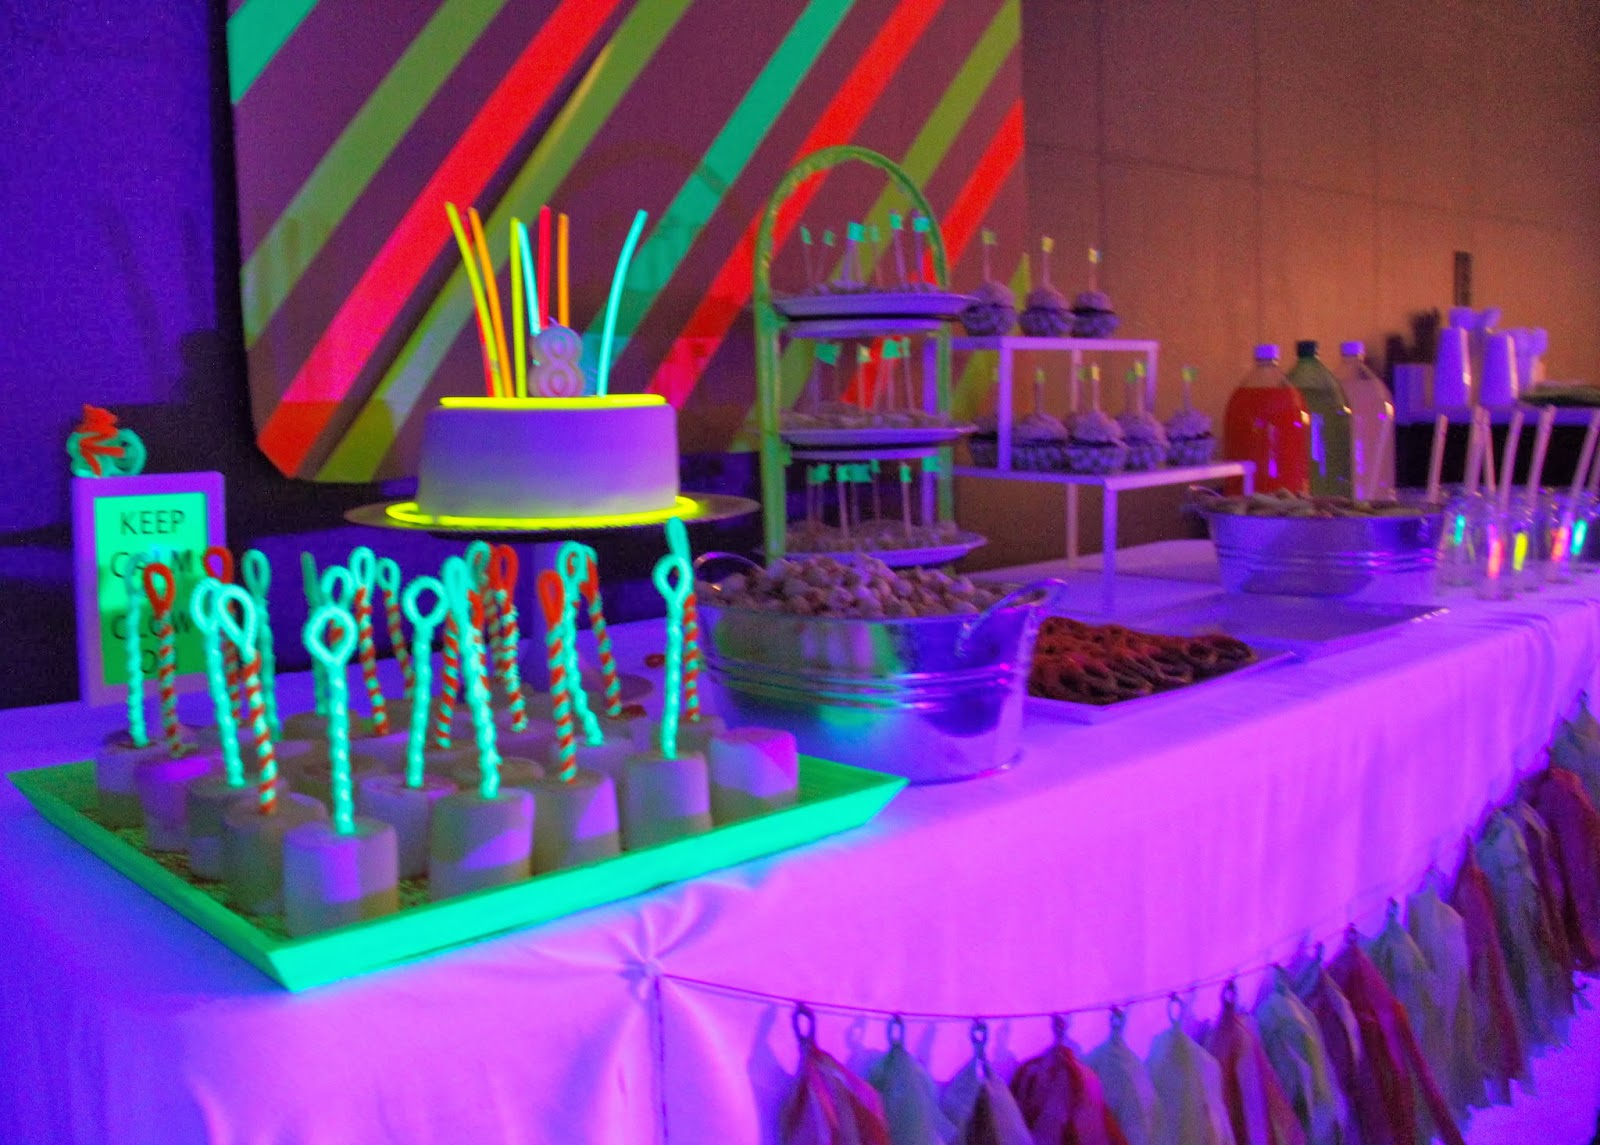 Neon Glow In The Dark Birthday Party